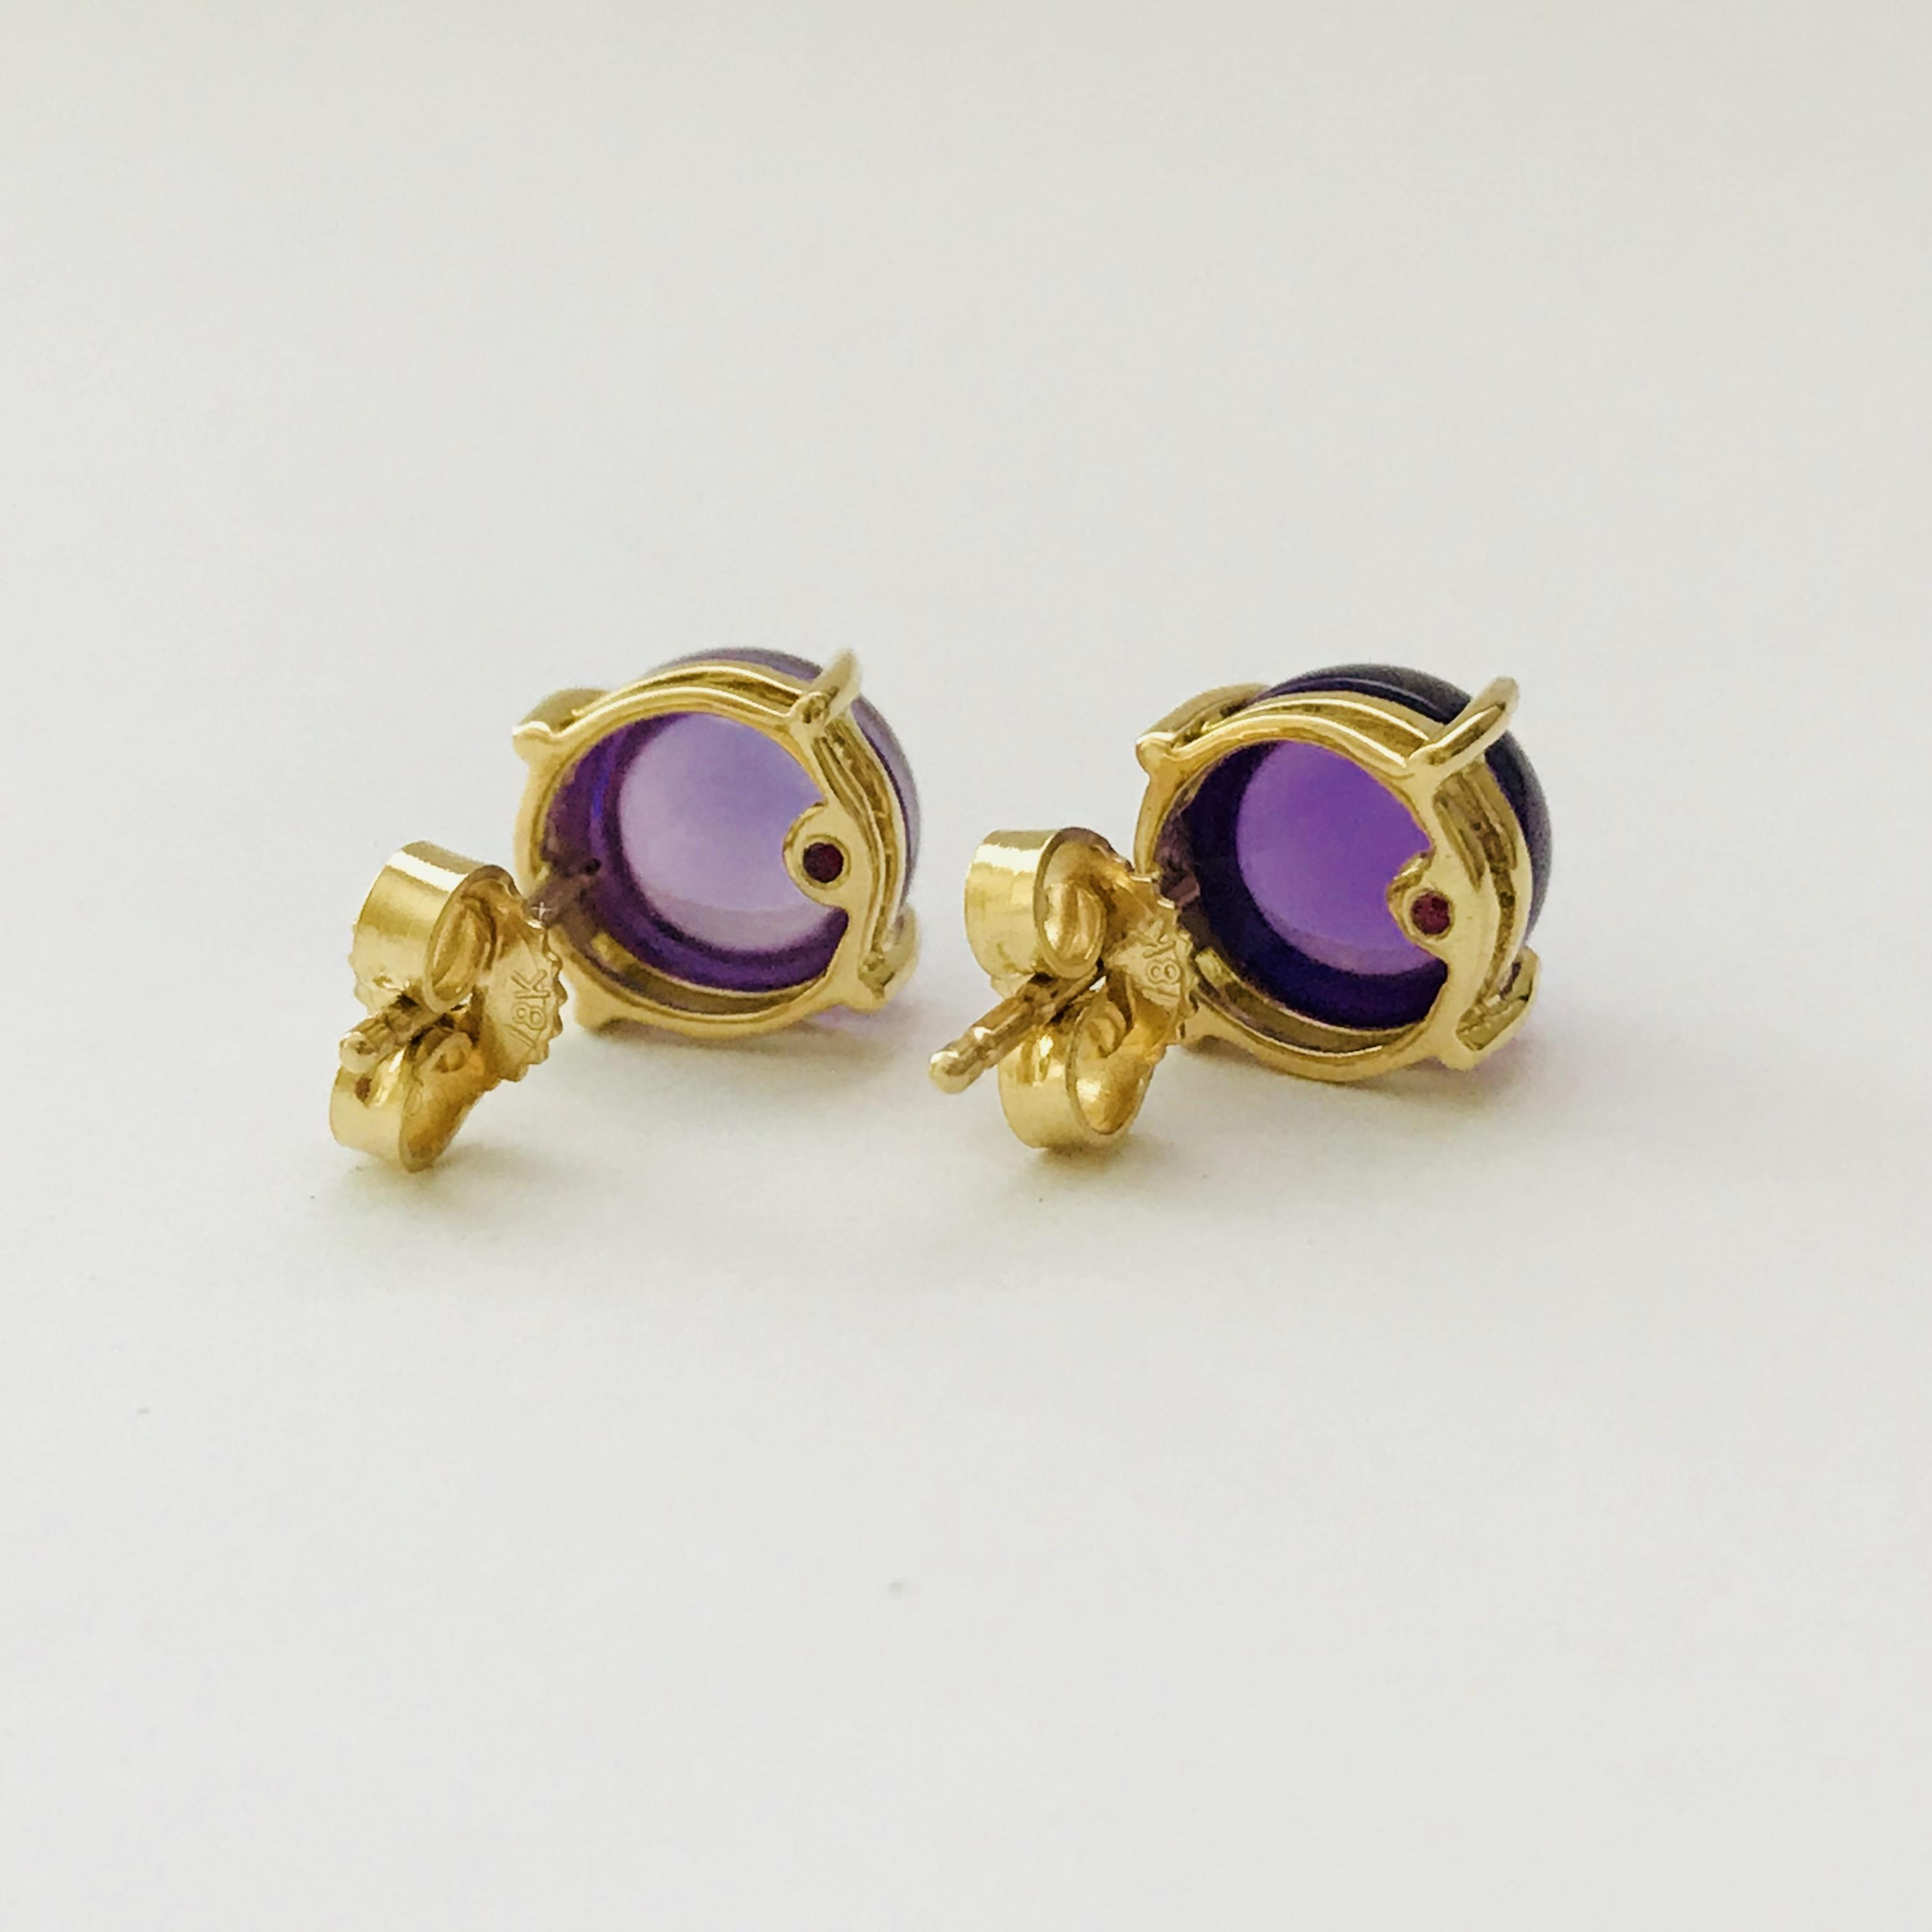 Roberto Coin 18k Yellow Gold Amethyst Round Stud Earrings